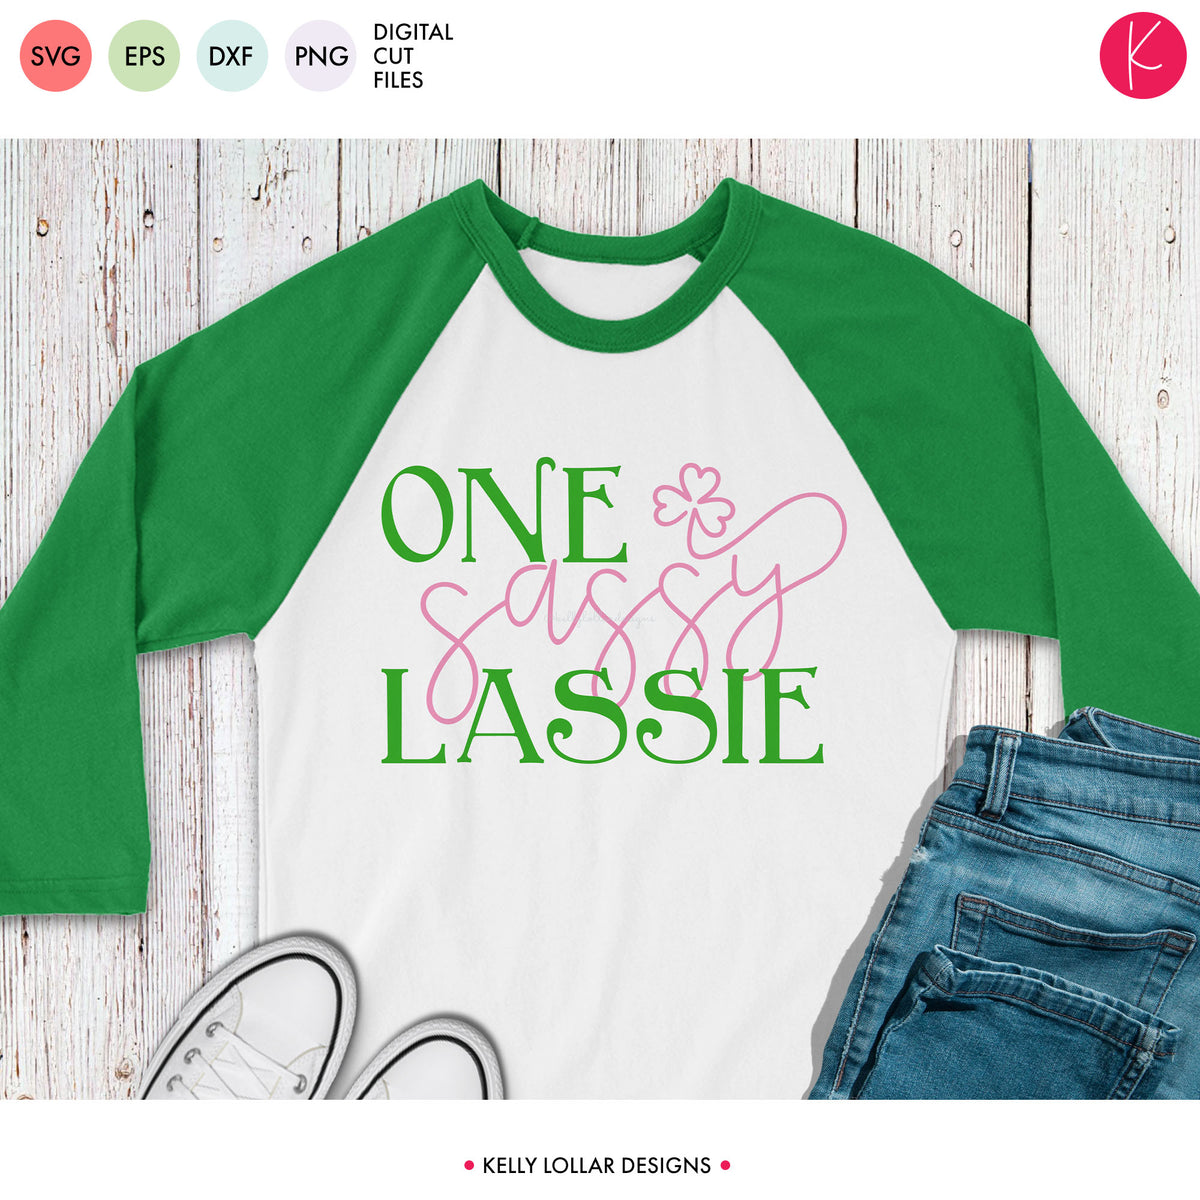 One Sassy Lassie | SVG DXF EPS PNG Cut Files